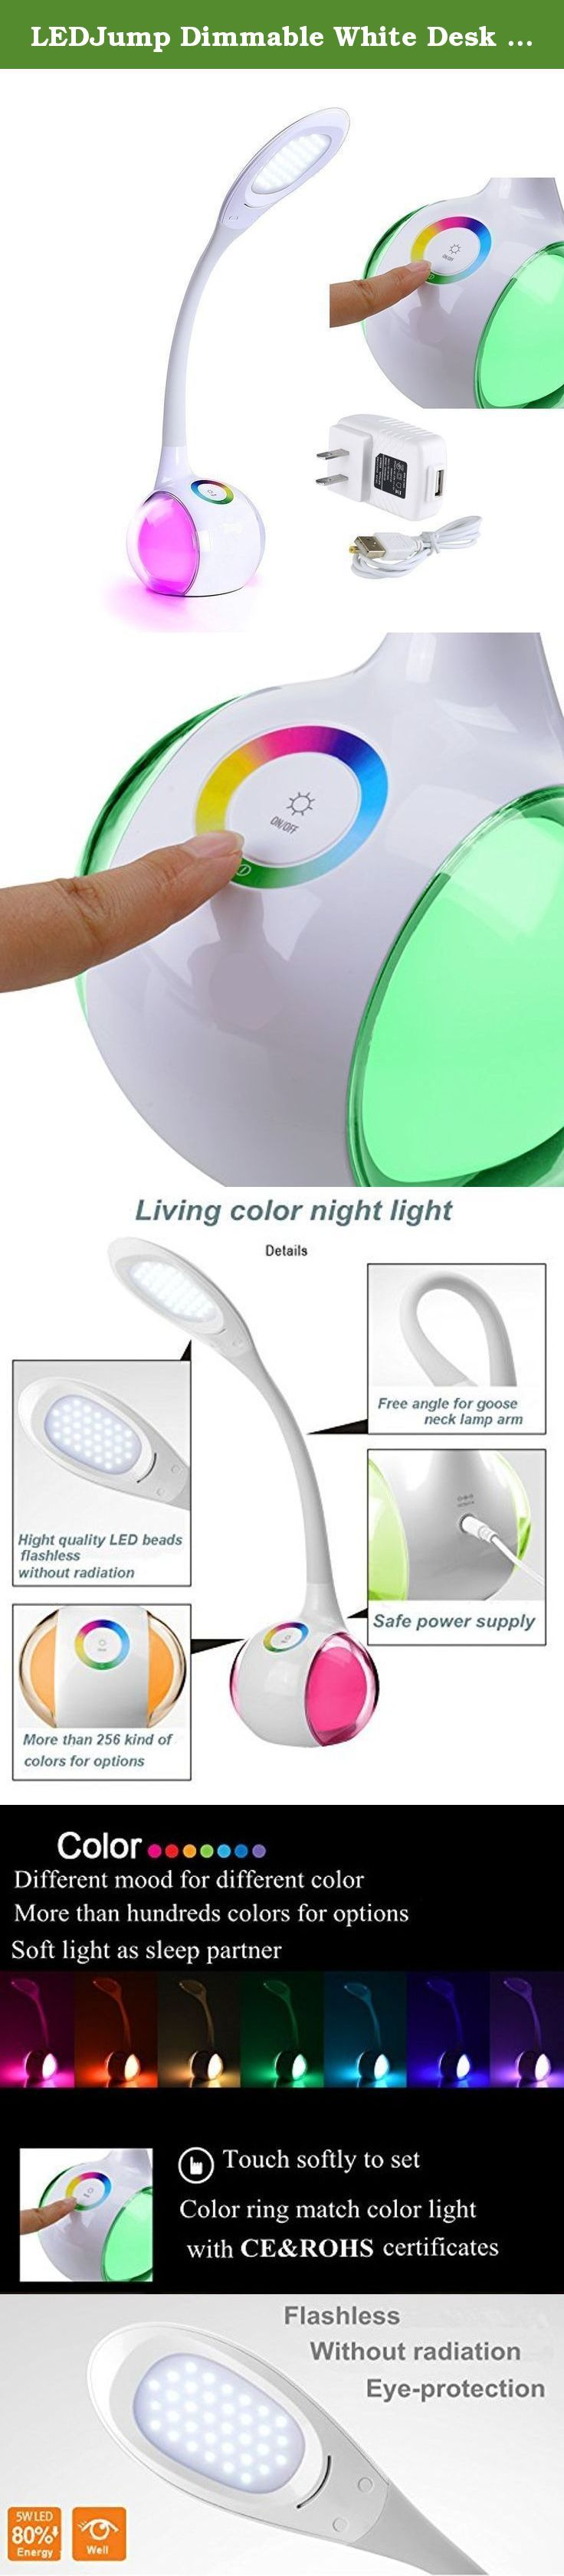 LEDJump Dimmable White Desk Lamp With Night Beauty Double Sides Color Changes Touch Series Eye-Protection LED Desk Lamp Folding Goose Neck, Foldable, USB Charger 5-Year Warrantys. Unique design led desk lamp series, light temperature is perfect for bedroom and study desk. foldable and rotatable is good for travel. we are manufacture direct, we tested 200 hours for light balance illumination purpose. No lead or mercury. No UV or IR Radiation. Uniform and soft light effect, anti-dazzle...